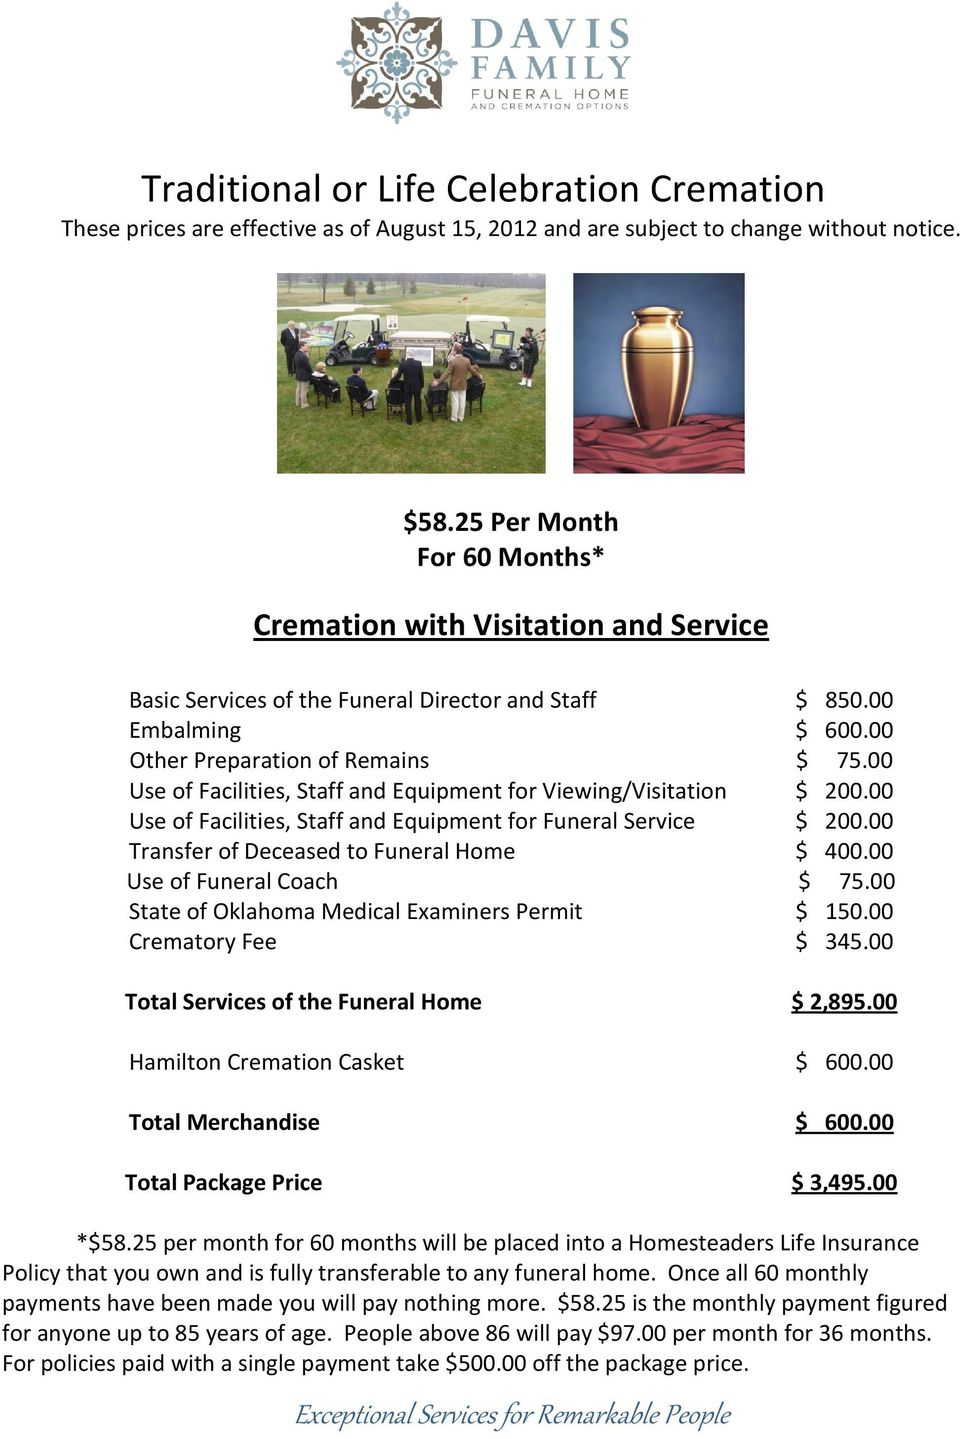 25 per month for 60 months will be placed into a Homesteaders Life Insurance Policy that you own and is fully transferable to any funeral home.